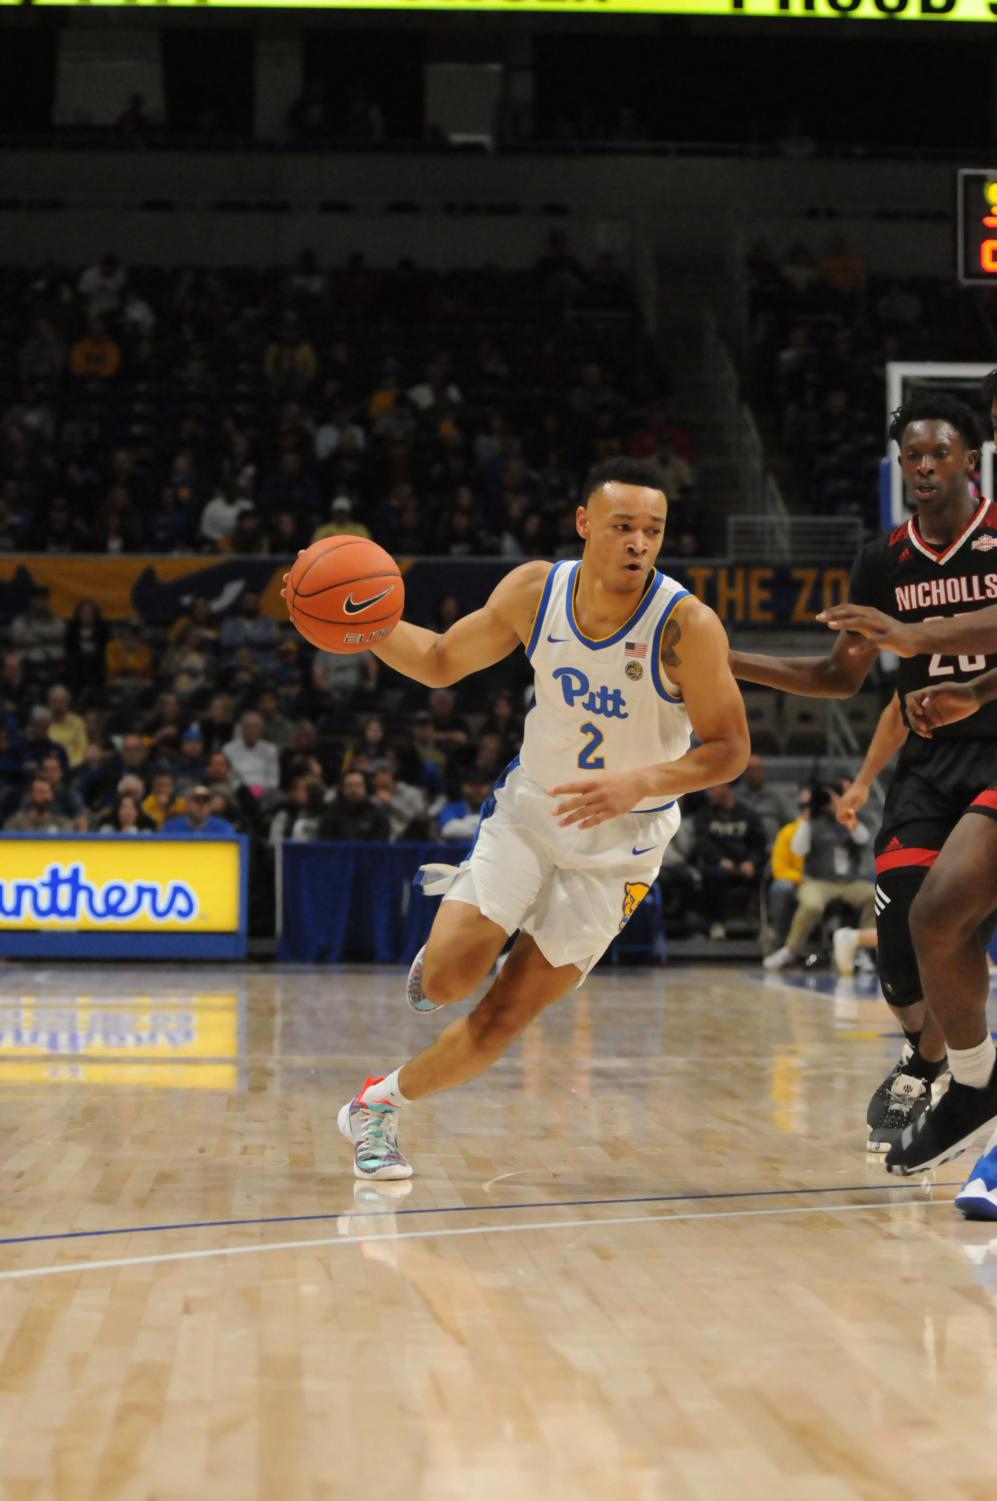 Trey McGowens, pictured here against Nicholls State, led Pitt with 25 points against Robert Morris University.